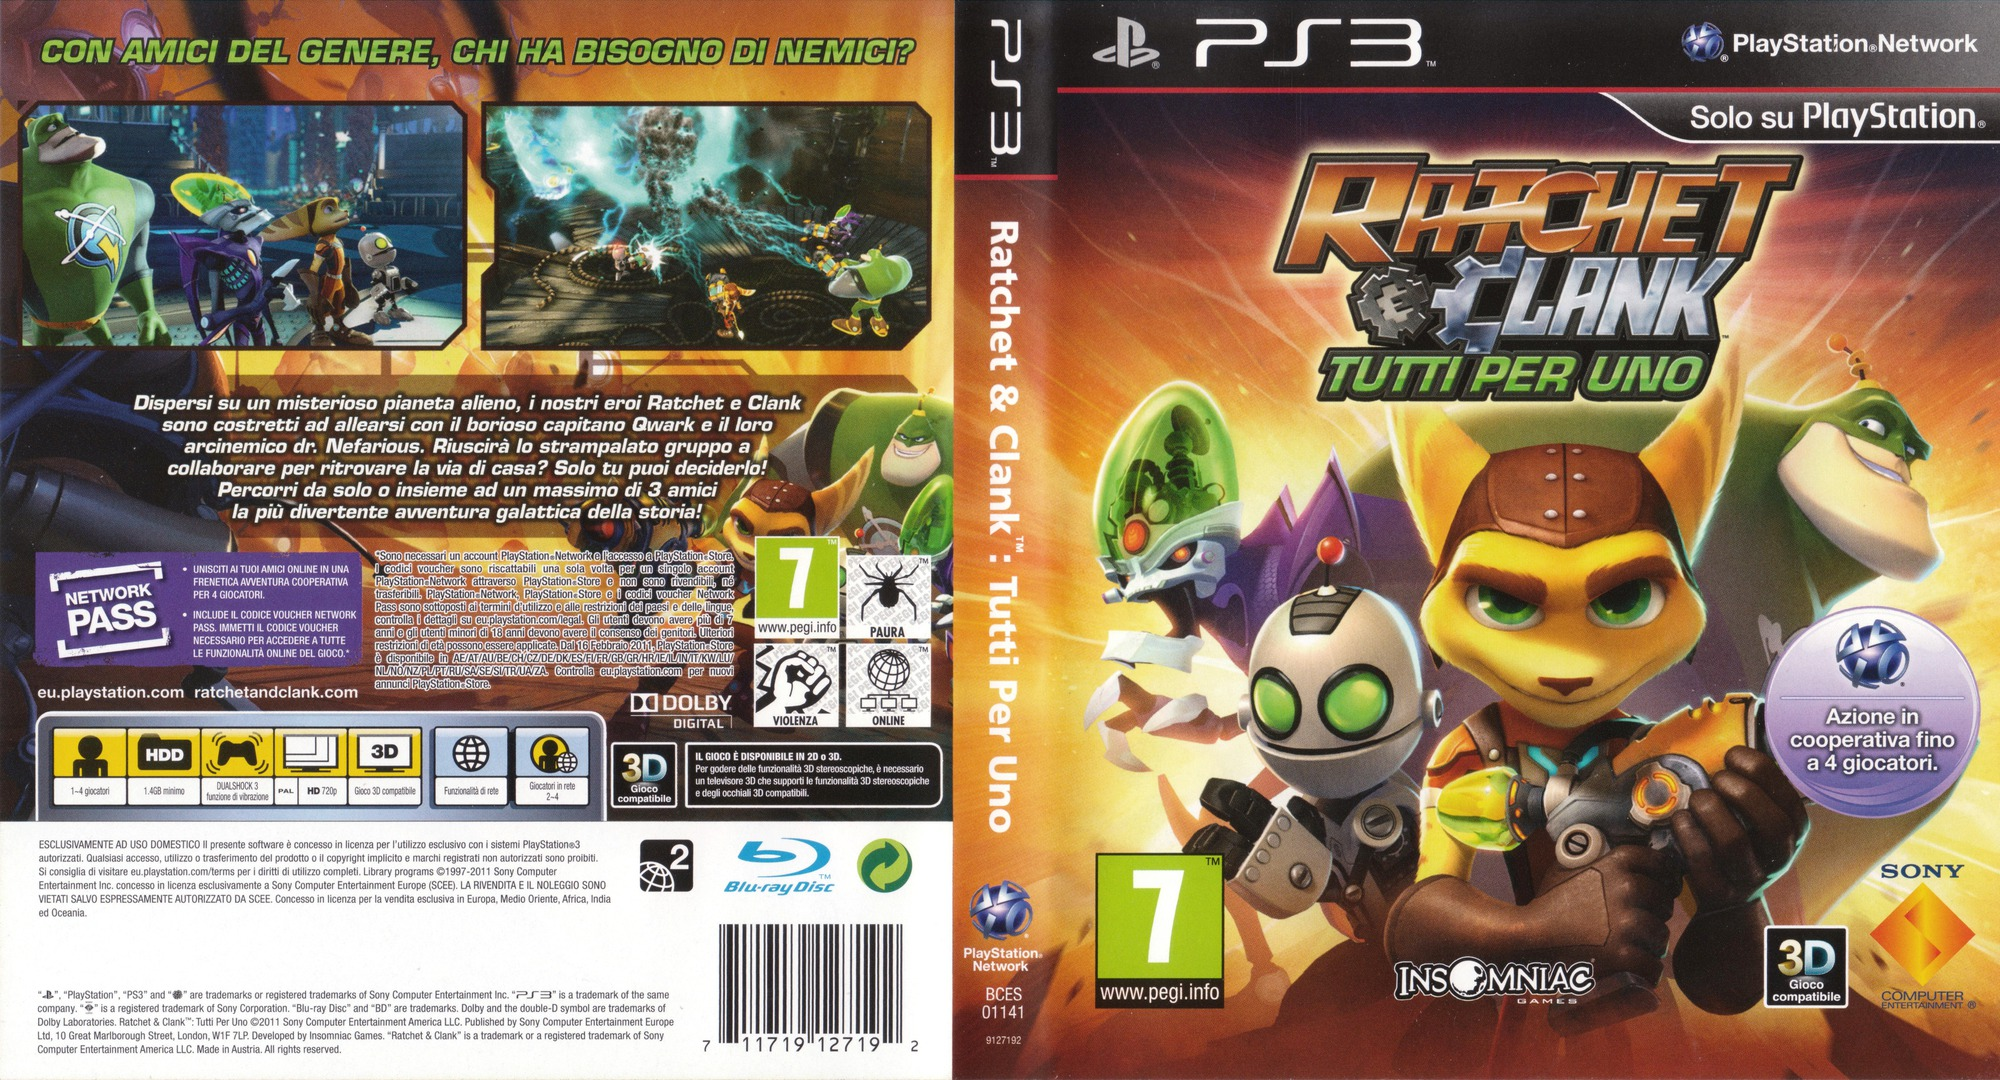 BCES01141 Ratchet Amp Clank All 4 One